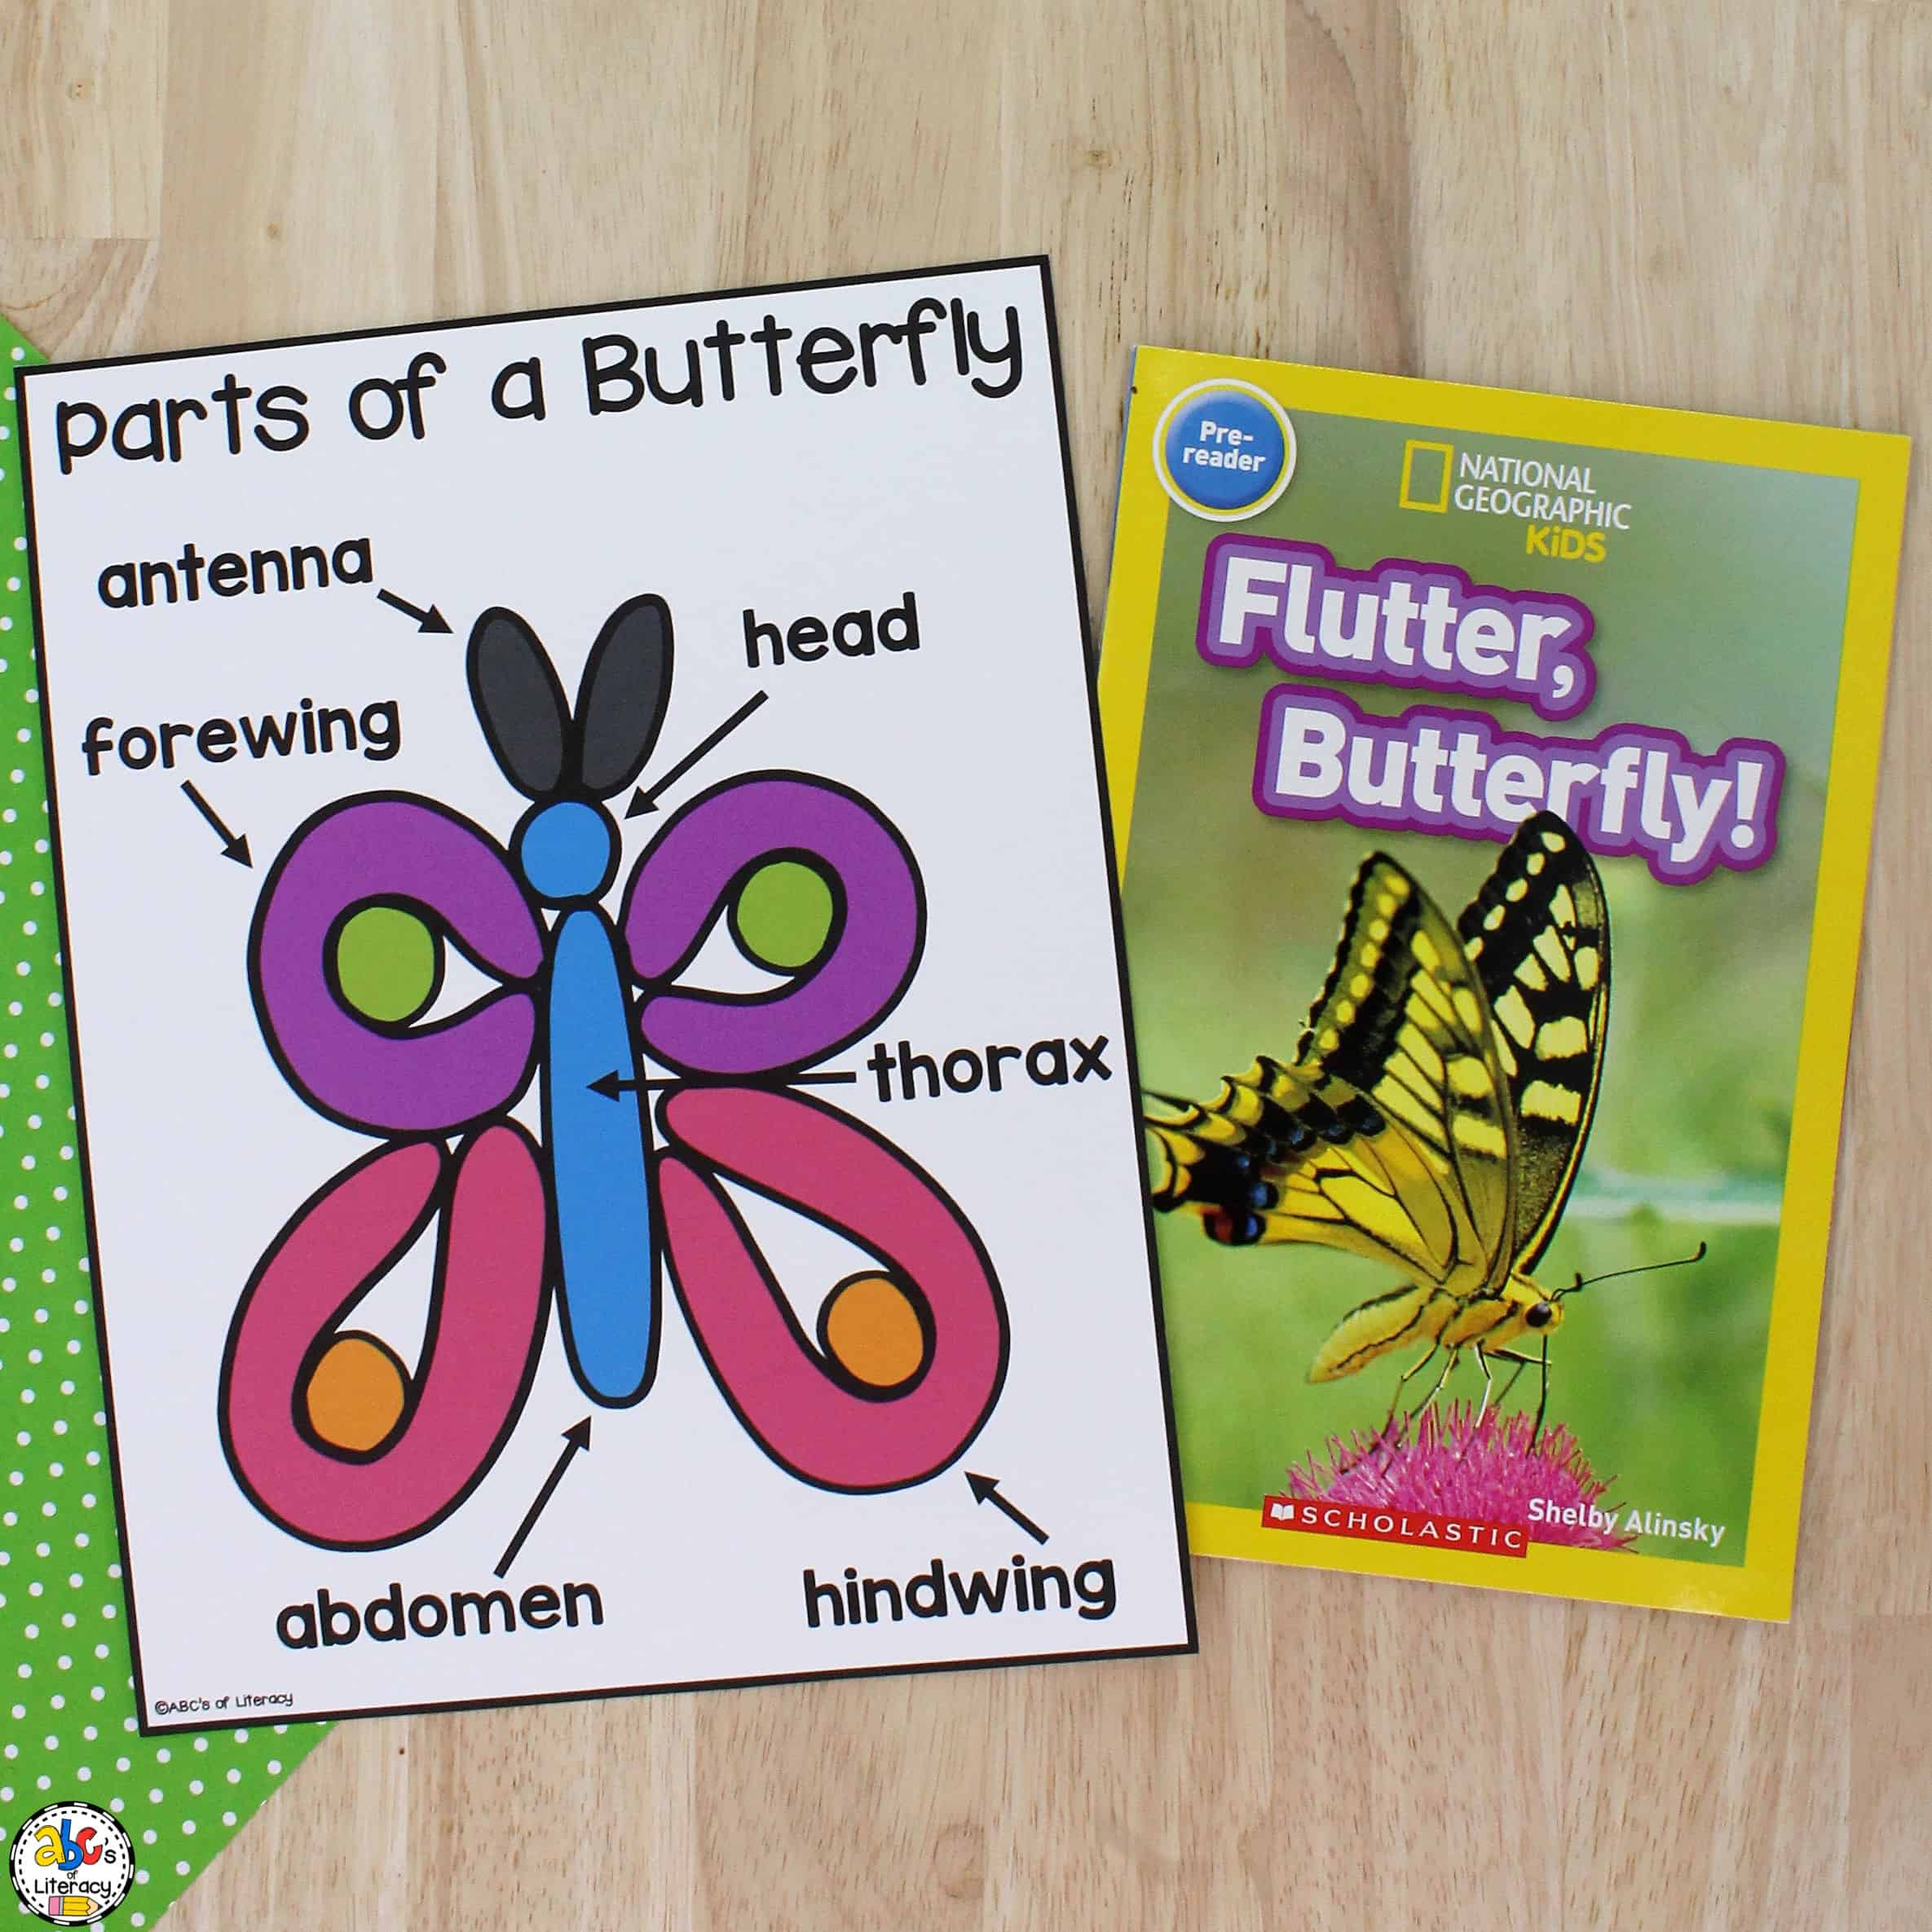 Butterfly Parts Activity for Kids